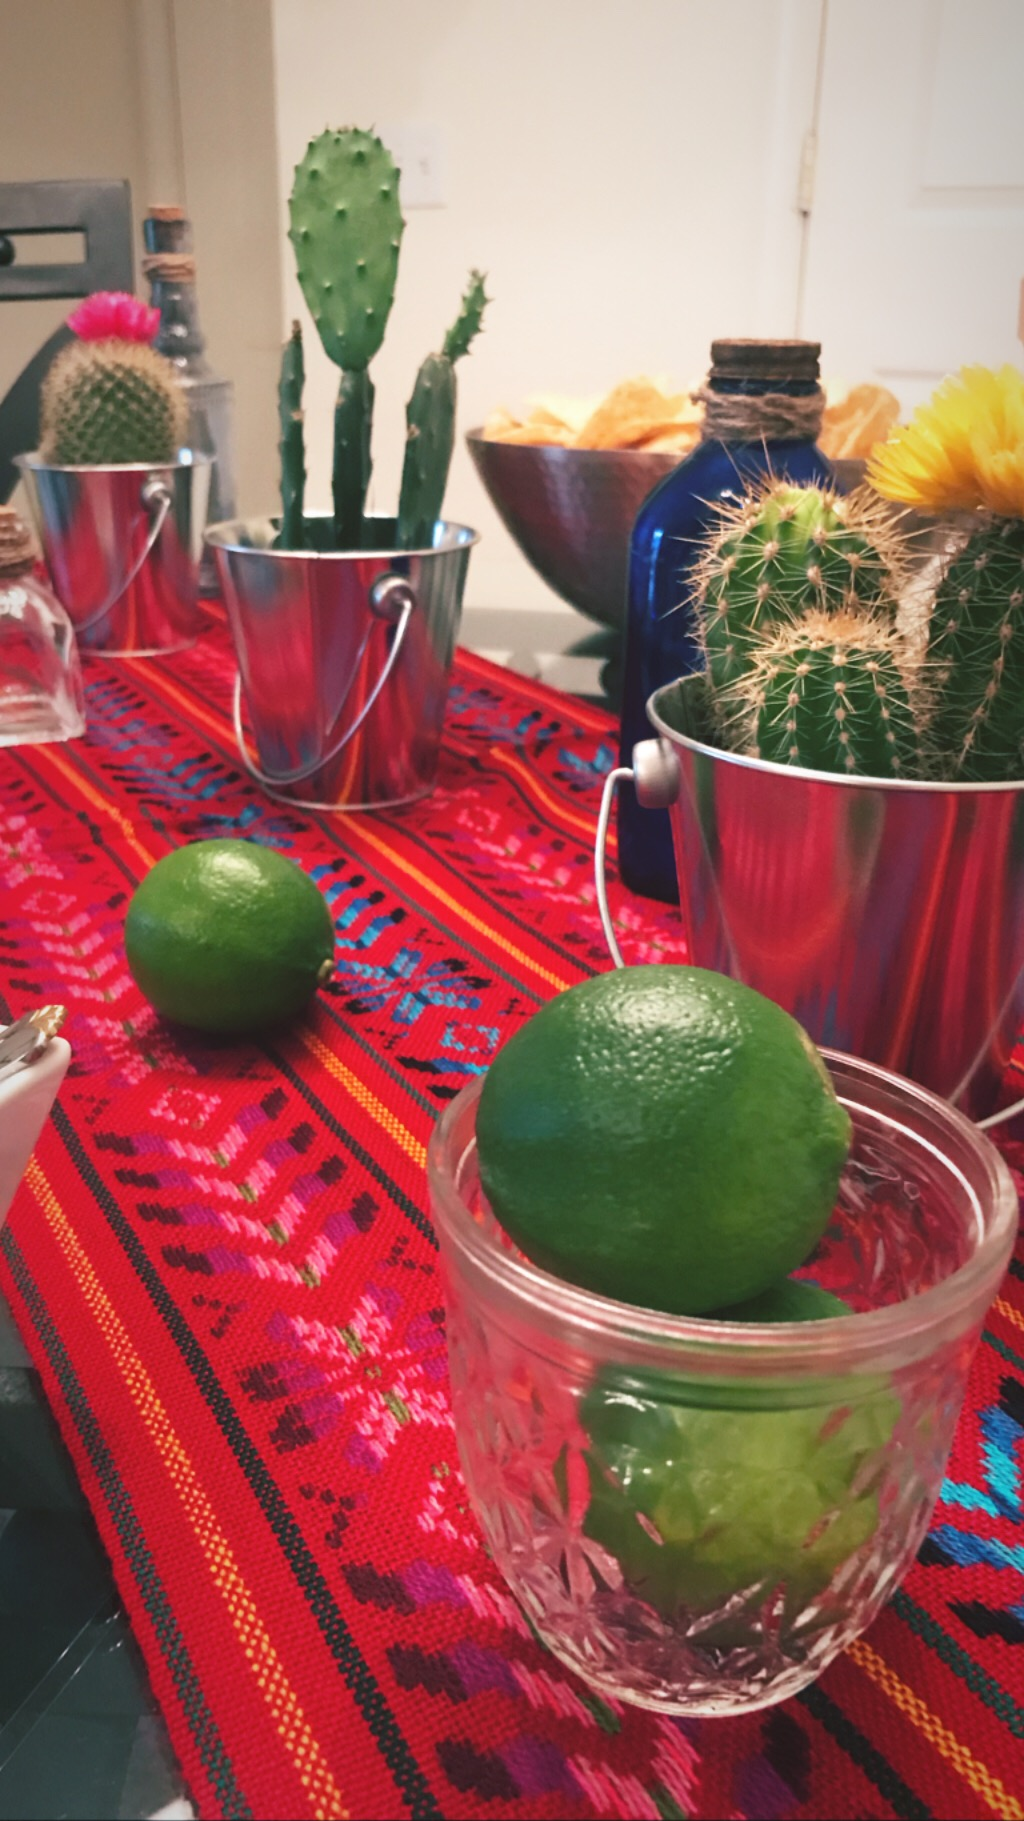 Limes on Limes - Limes in jars, limes sprinkled around the tablescape, and limes as food markers. When life gives you limes, use them for everything!